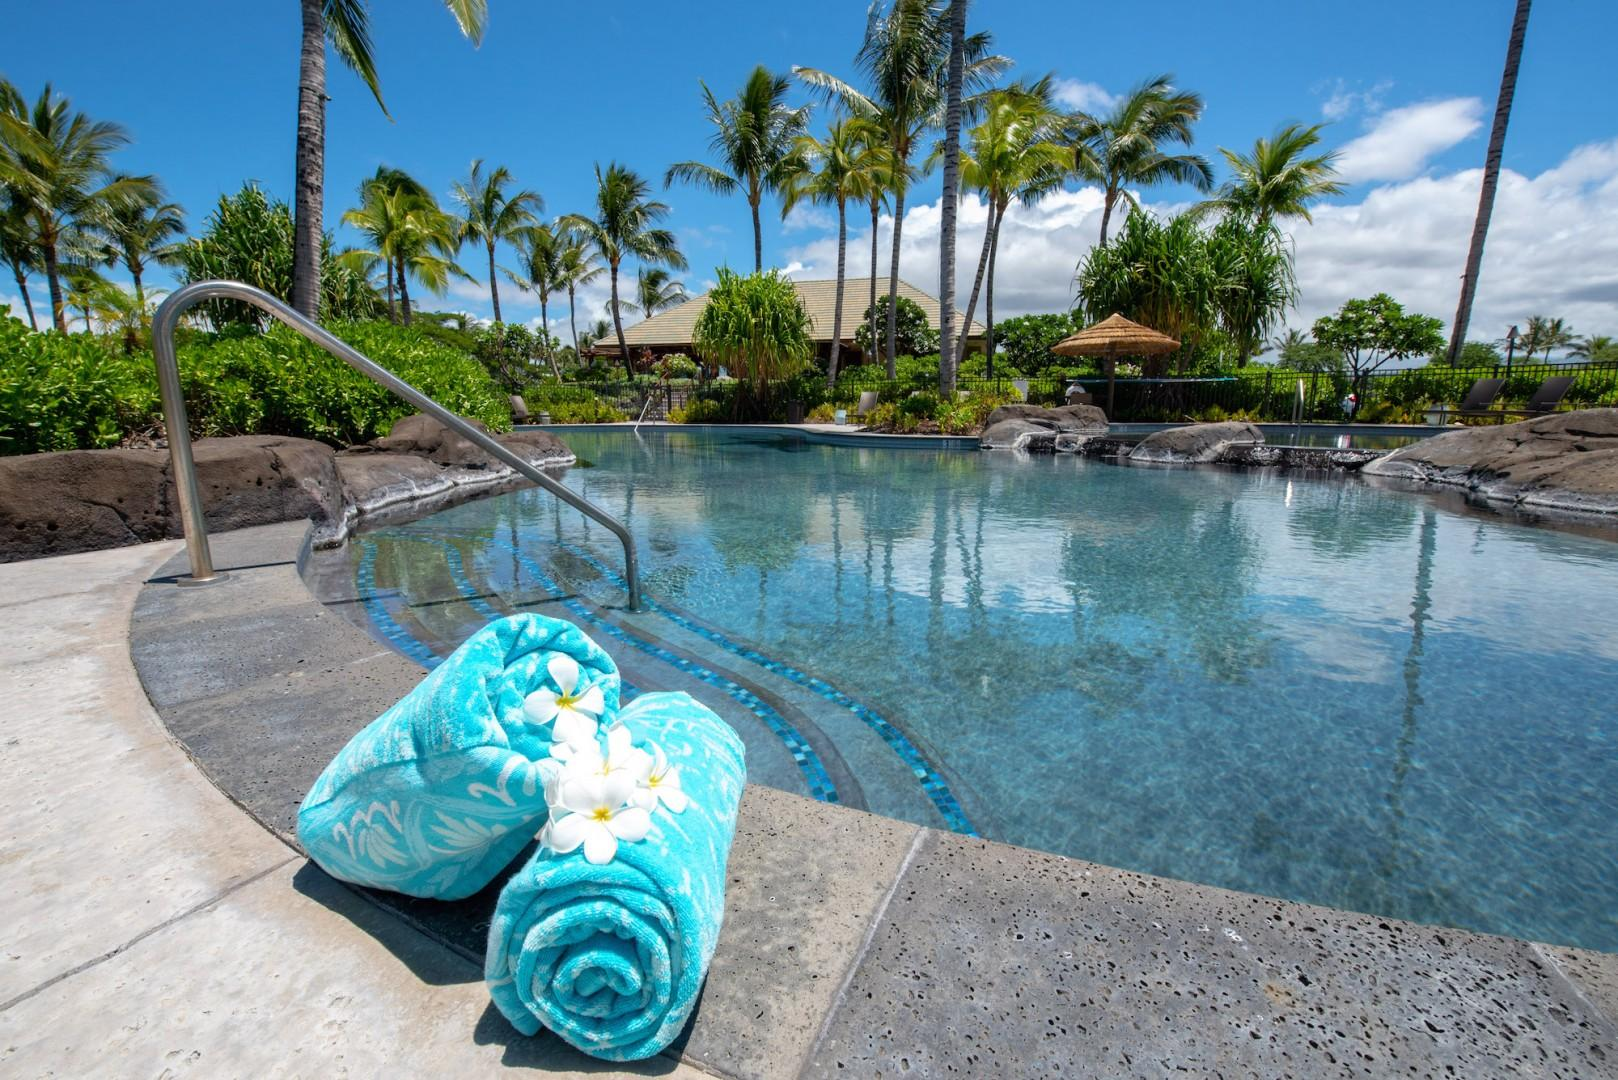 Enjoy More Swimming & Lounging Amenities at the Hana Pono Park Free-Form Swimming Pool With Jacuzzi.